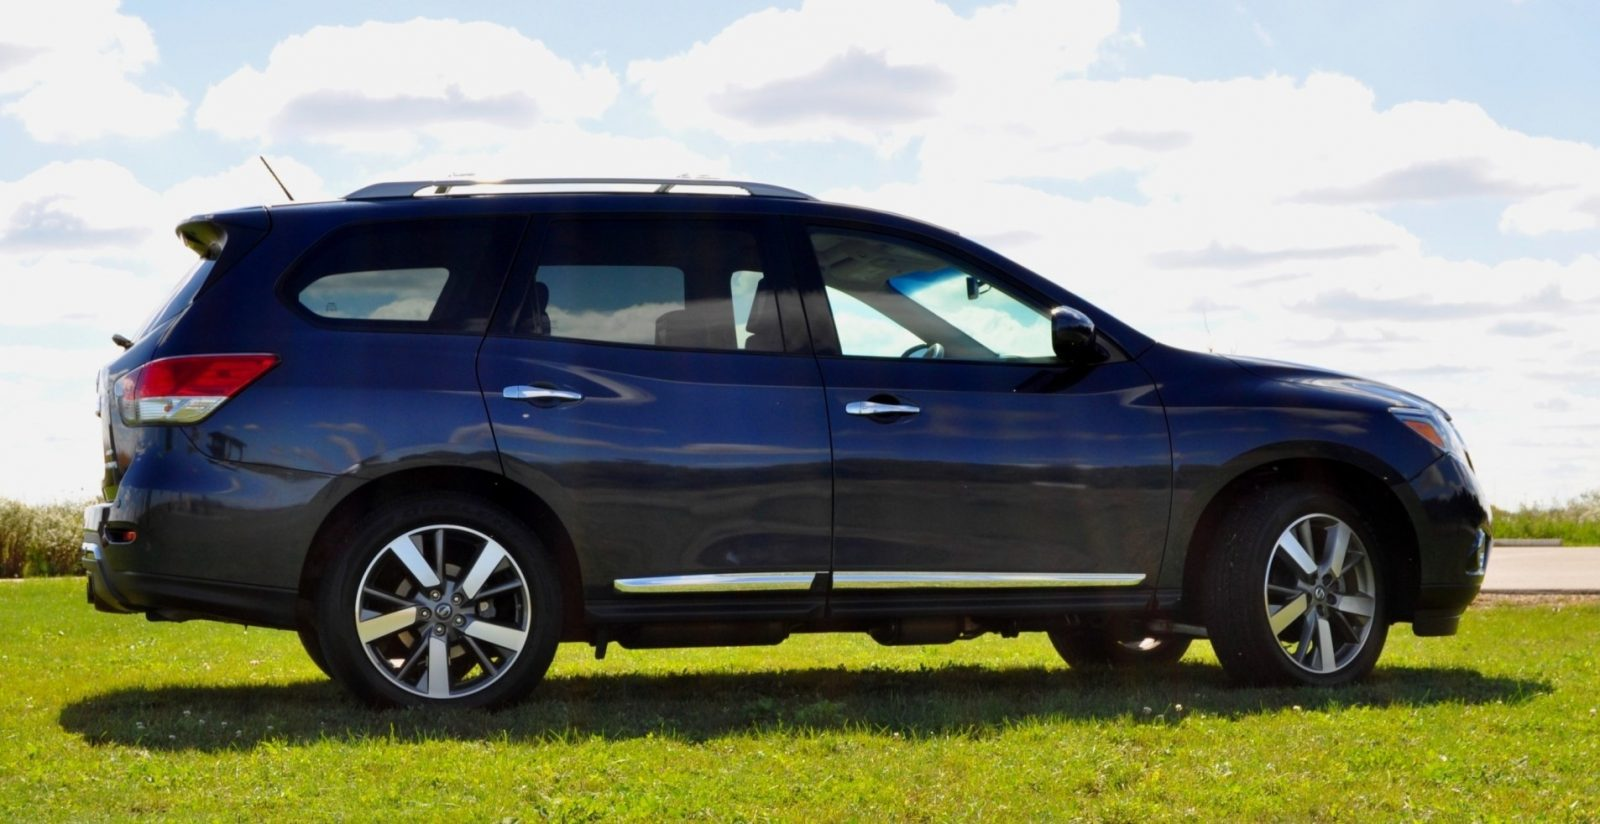 2014 Nissan Pathfinder Platinum Inside and Out95